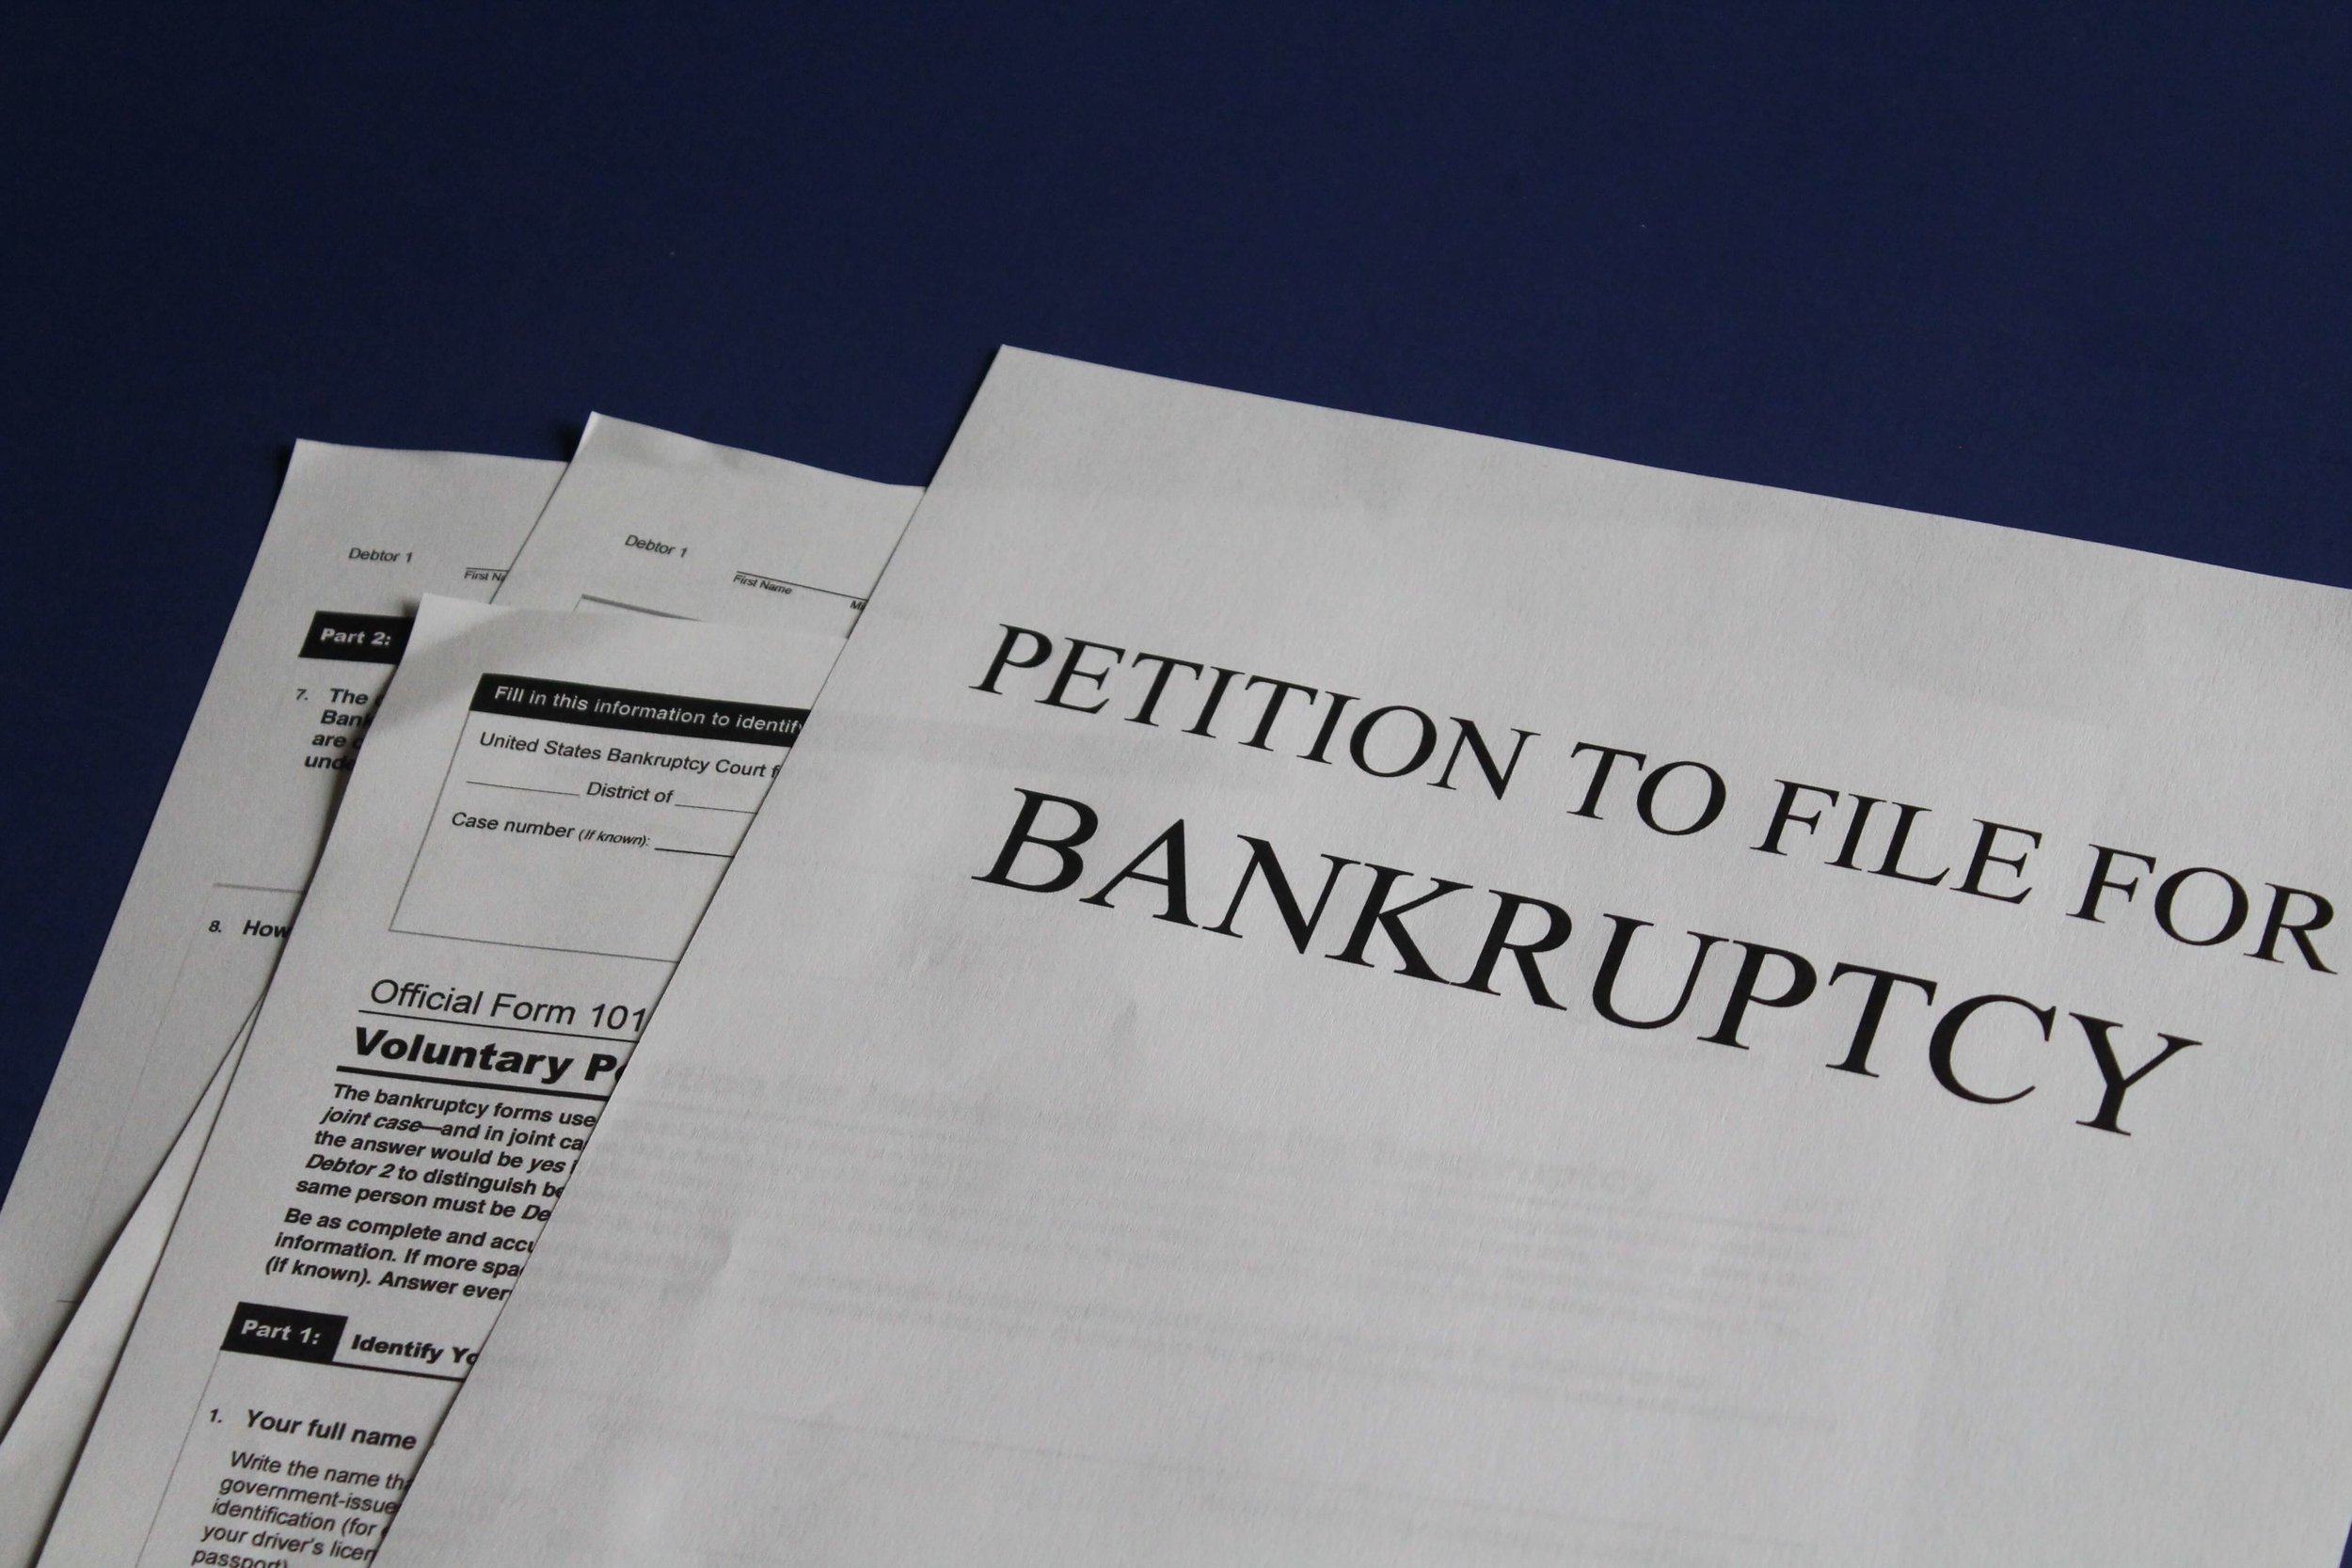 Petition to File Bankrupcy